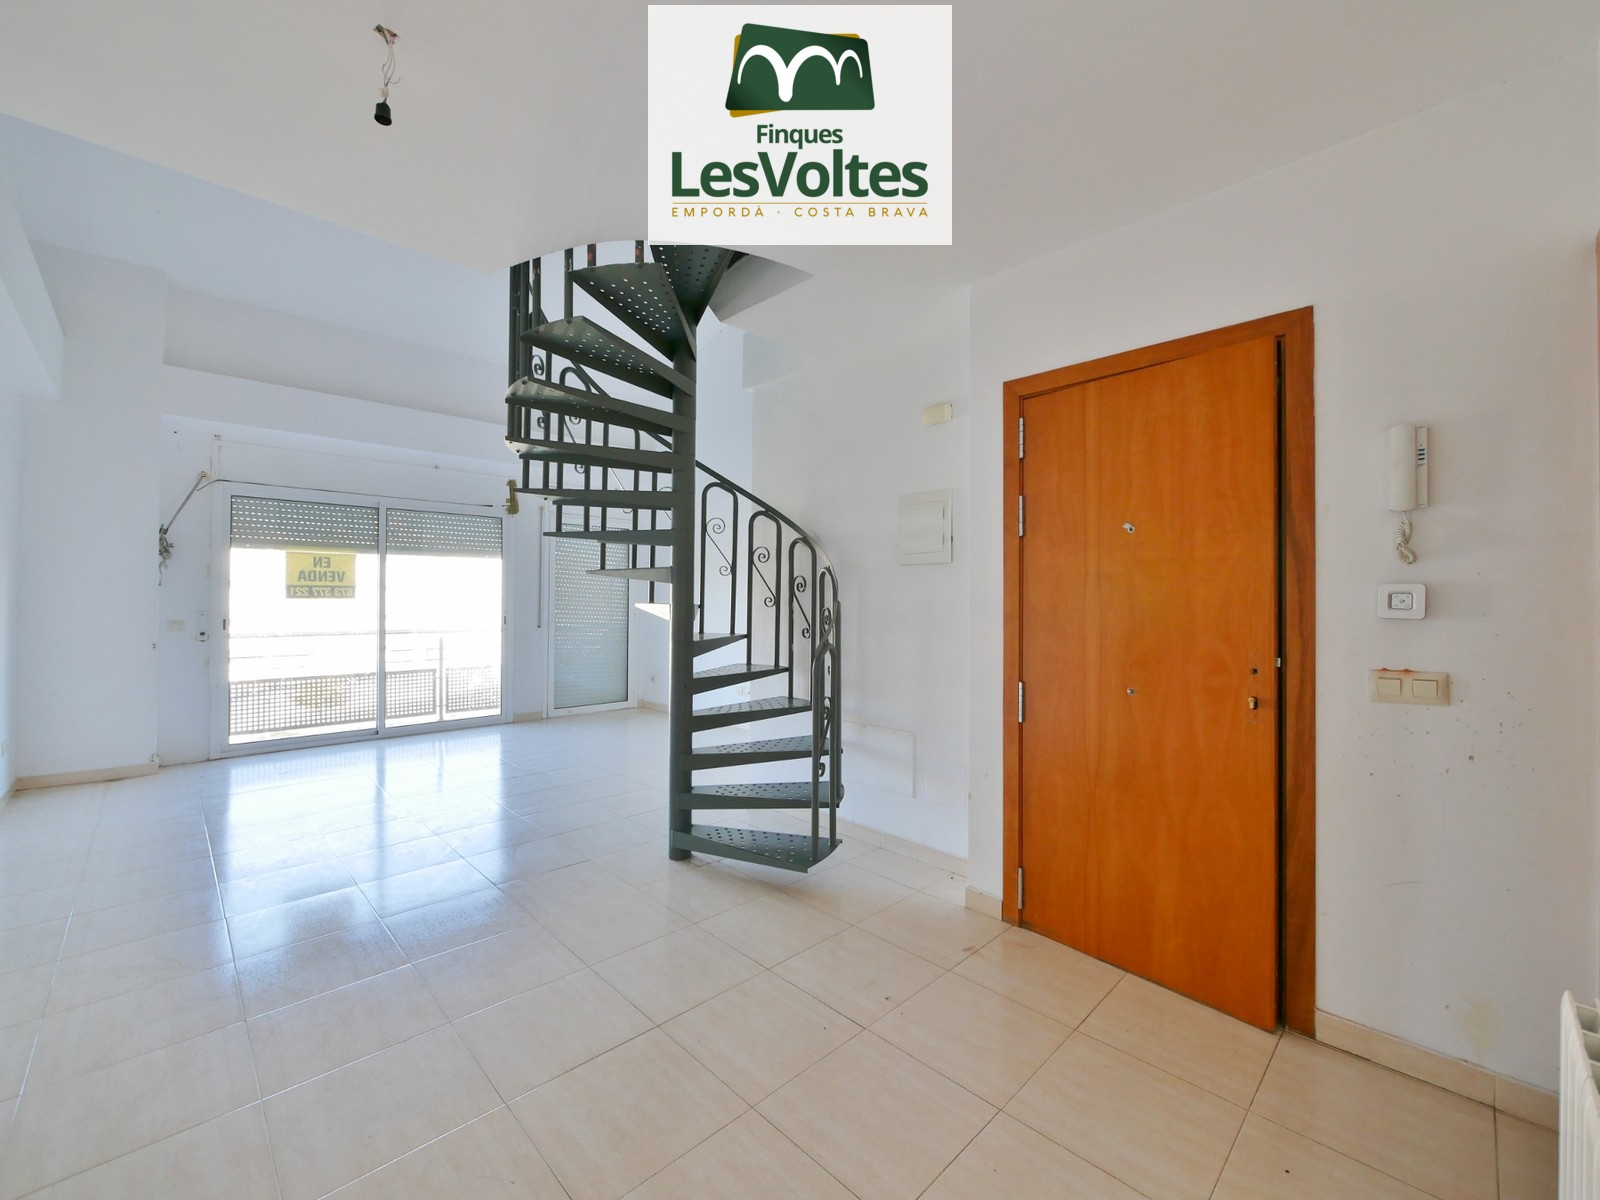 DUPLEX OF 124 M2 IN THIRD FLOOR WITH ELEVATOR FOR SALE IN LA BISBAL D'EMPORDÀ.